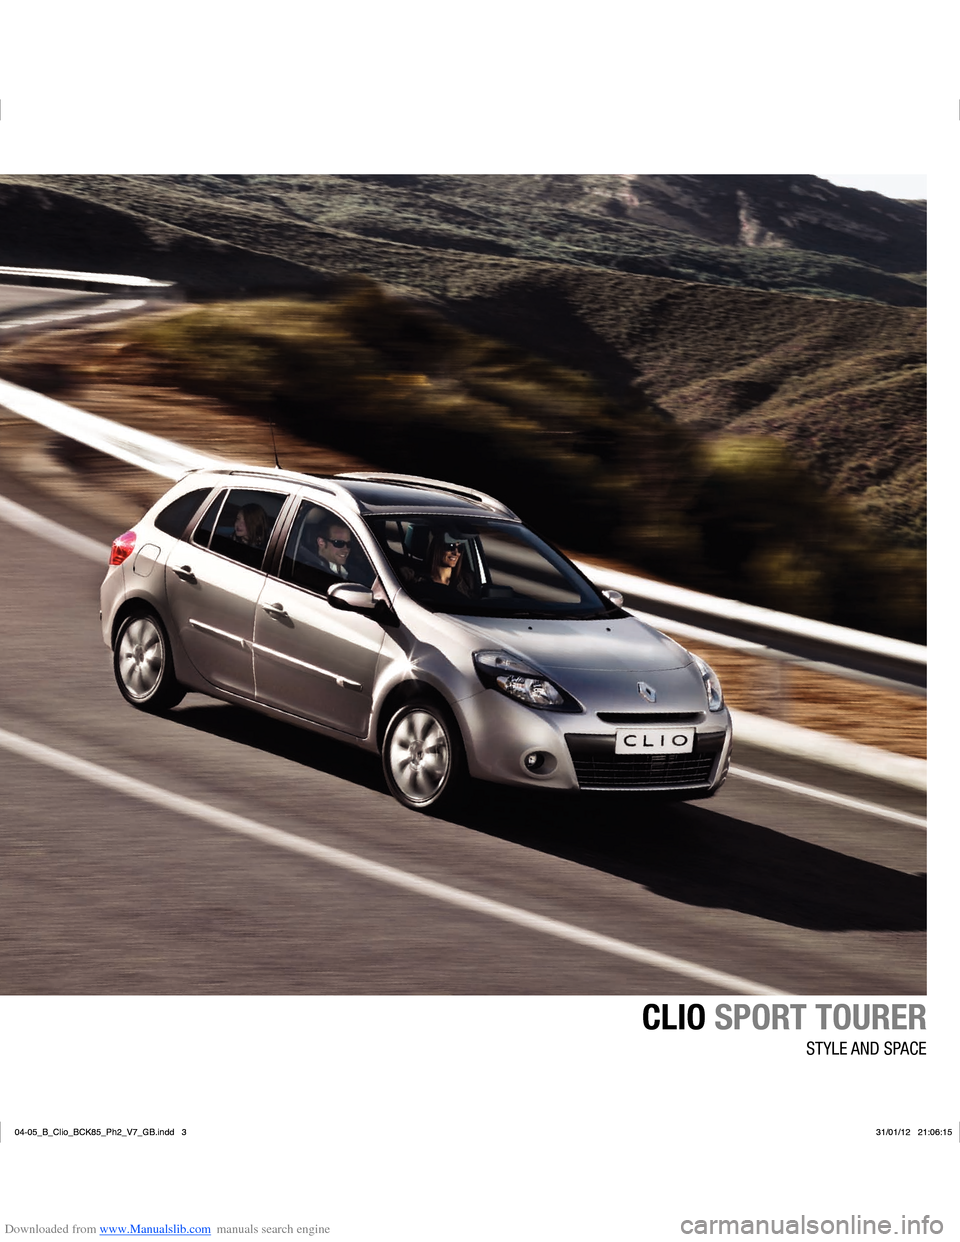 RENAULT CLIO 2012 X85 / 3.G User Manual, Page 7